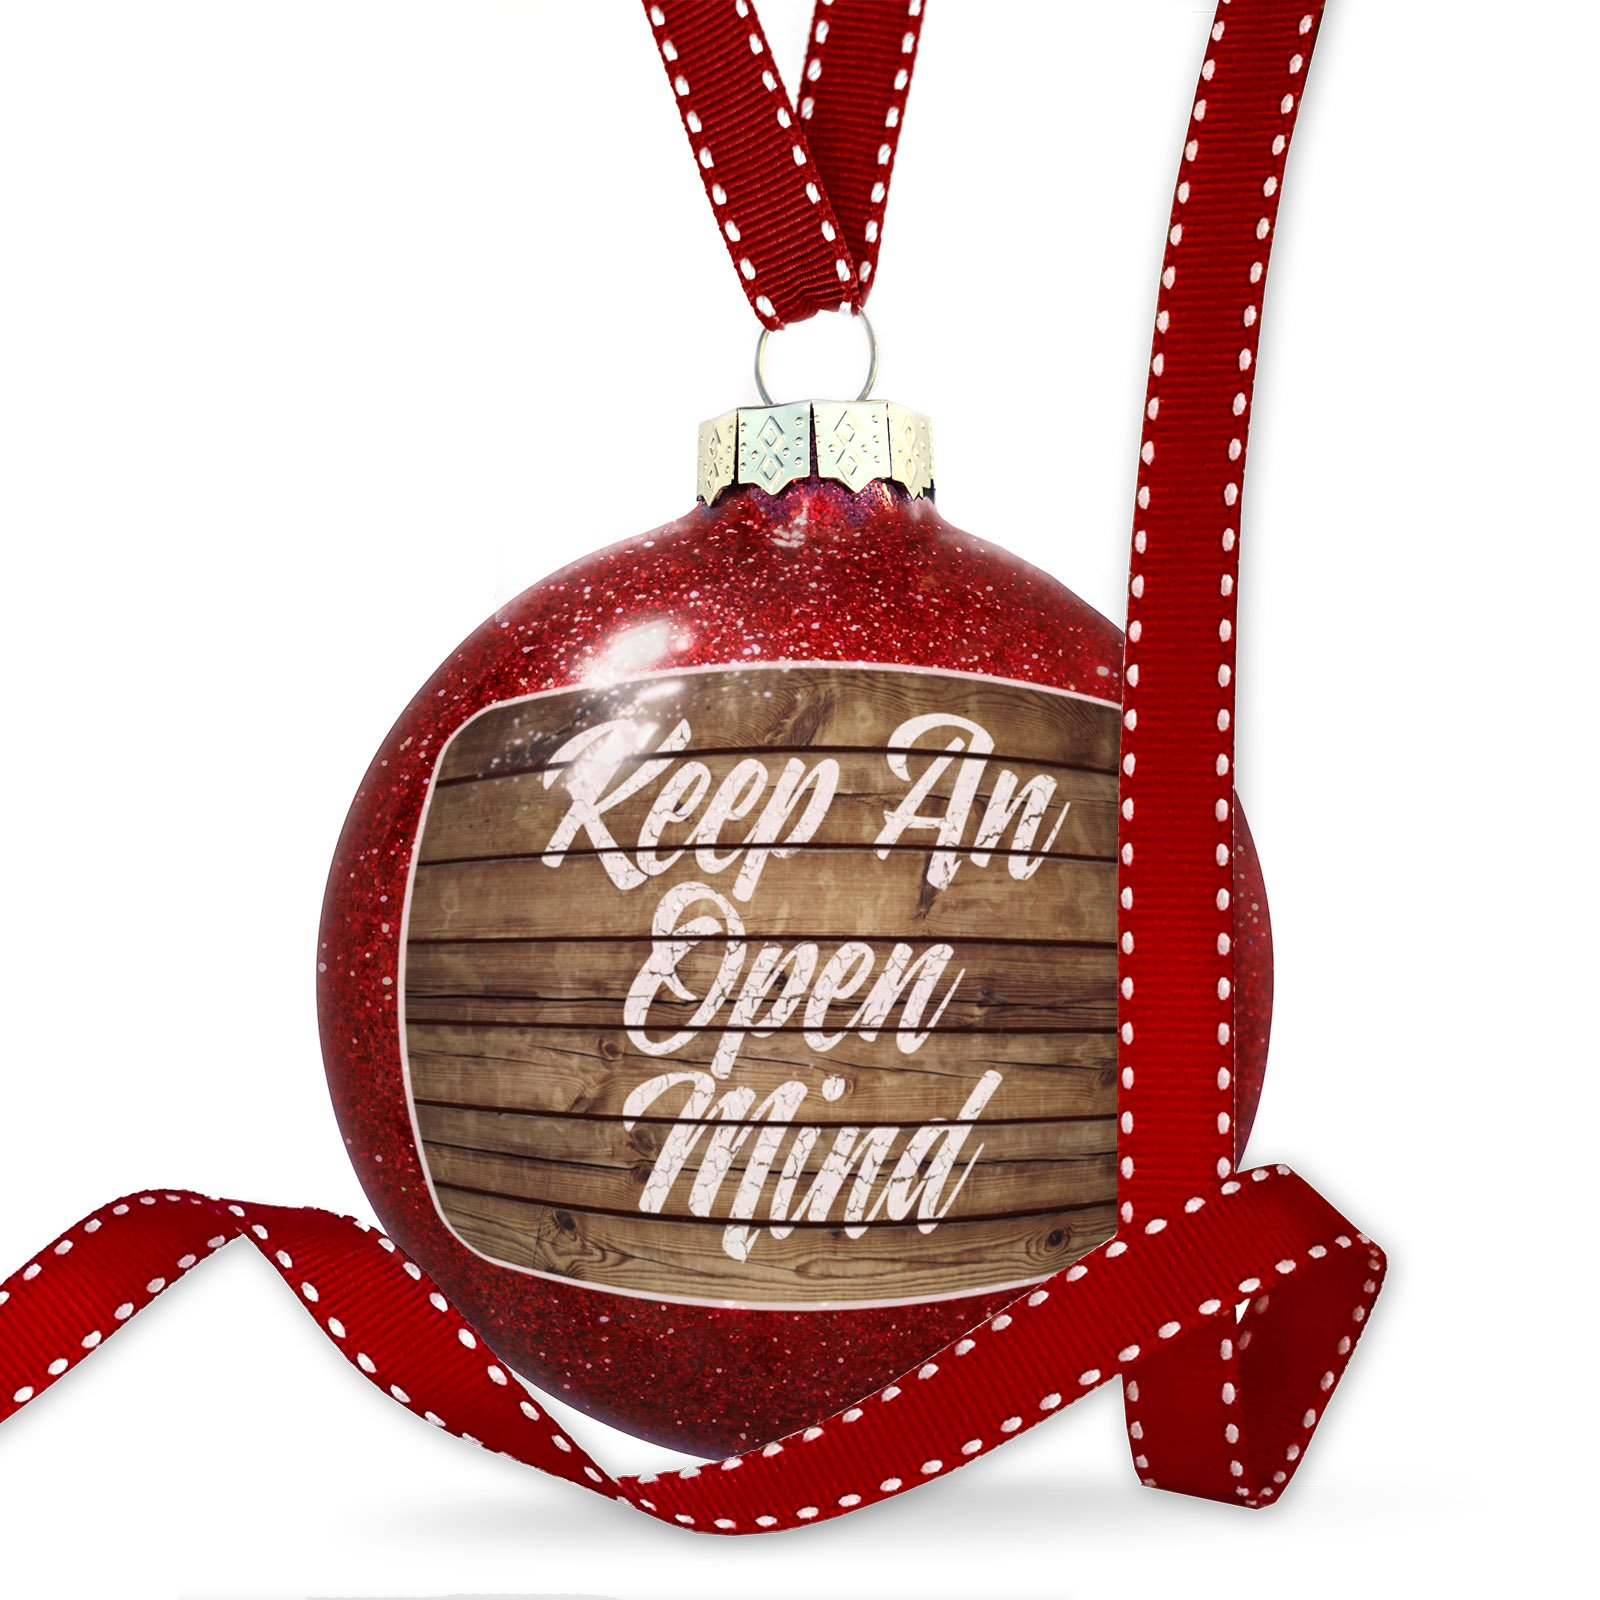 Christmas Decoration Painted Wood Keep An Open Mind Ornament